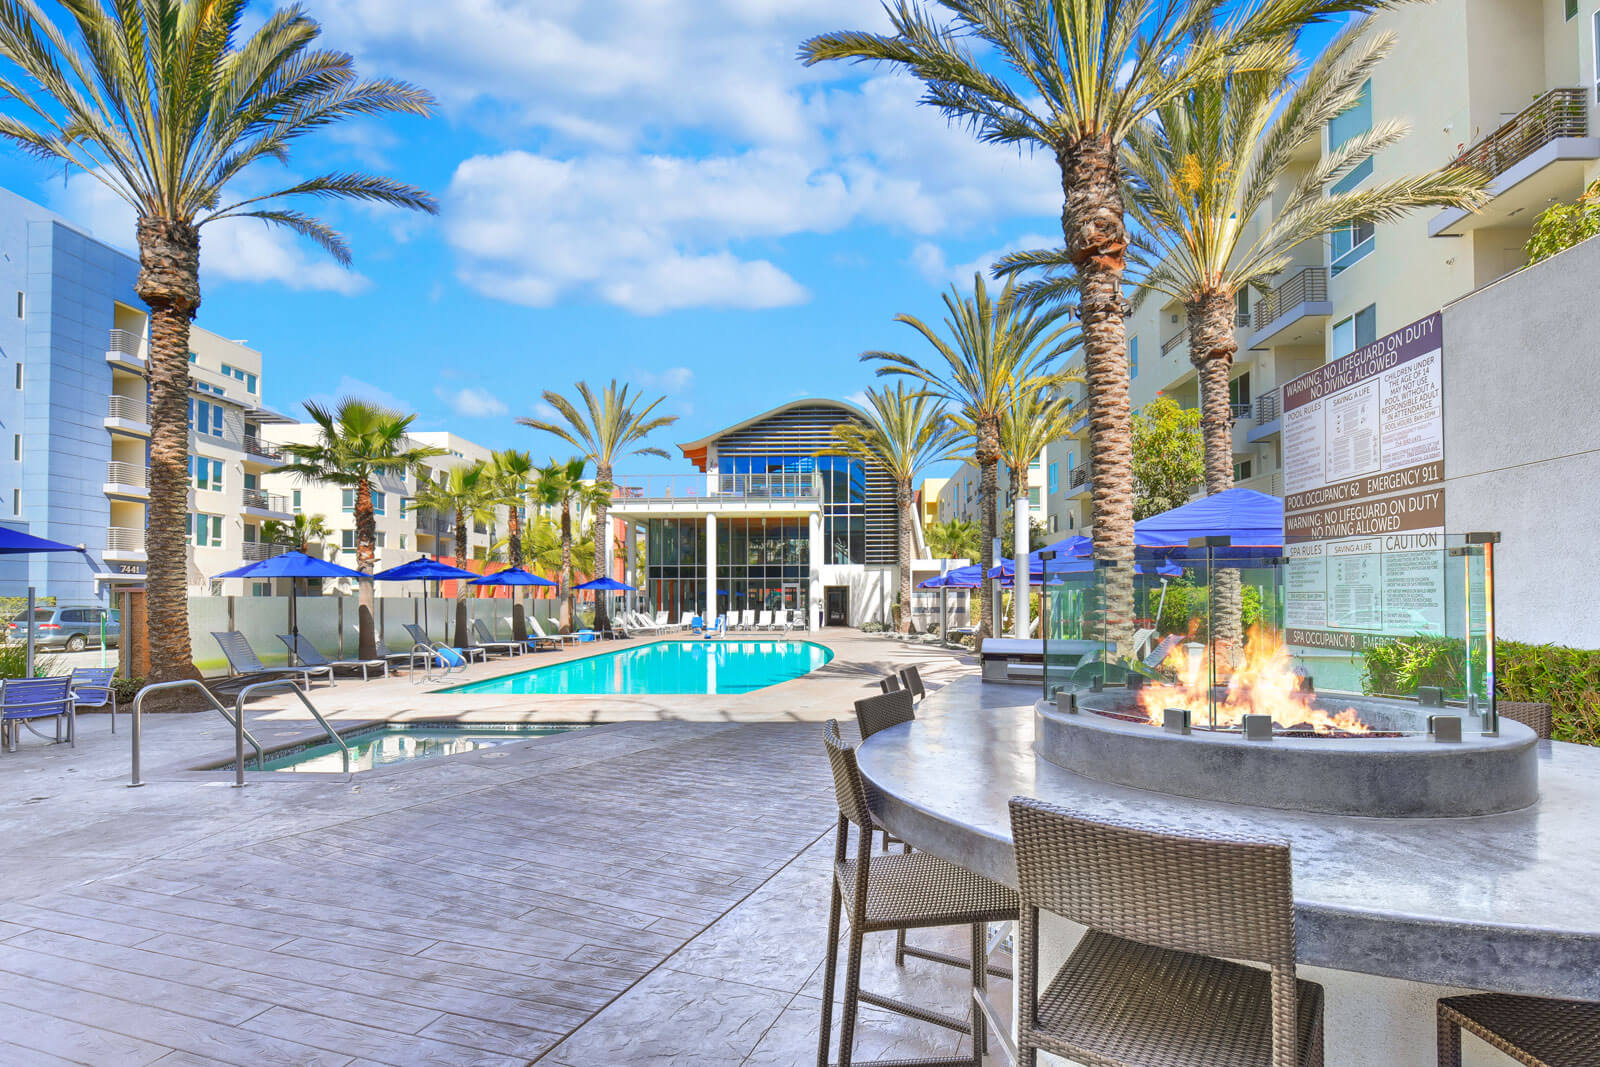 Poolside Grilling Stations and Fire Pits at Boardwalk by Windsor, 92647, CA